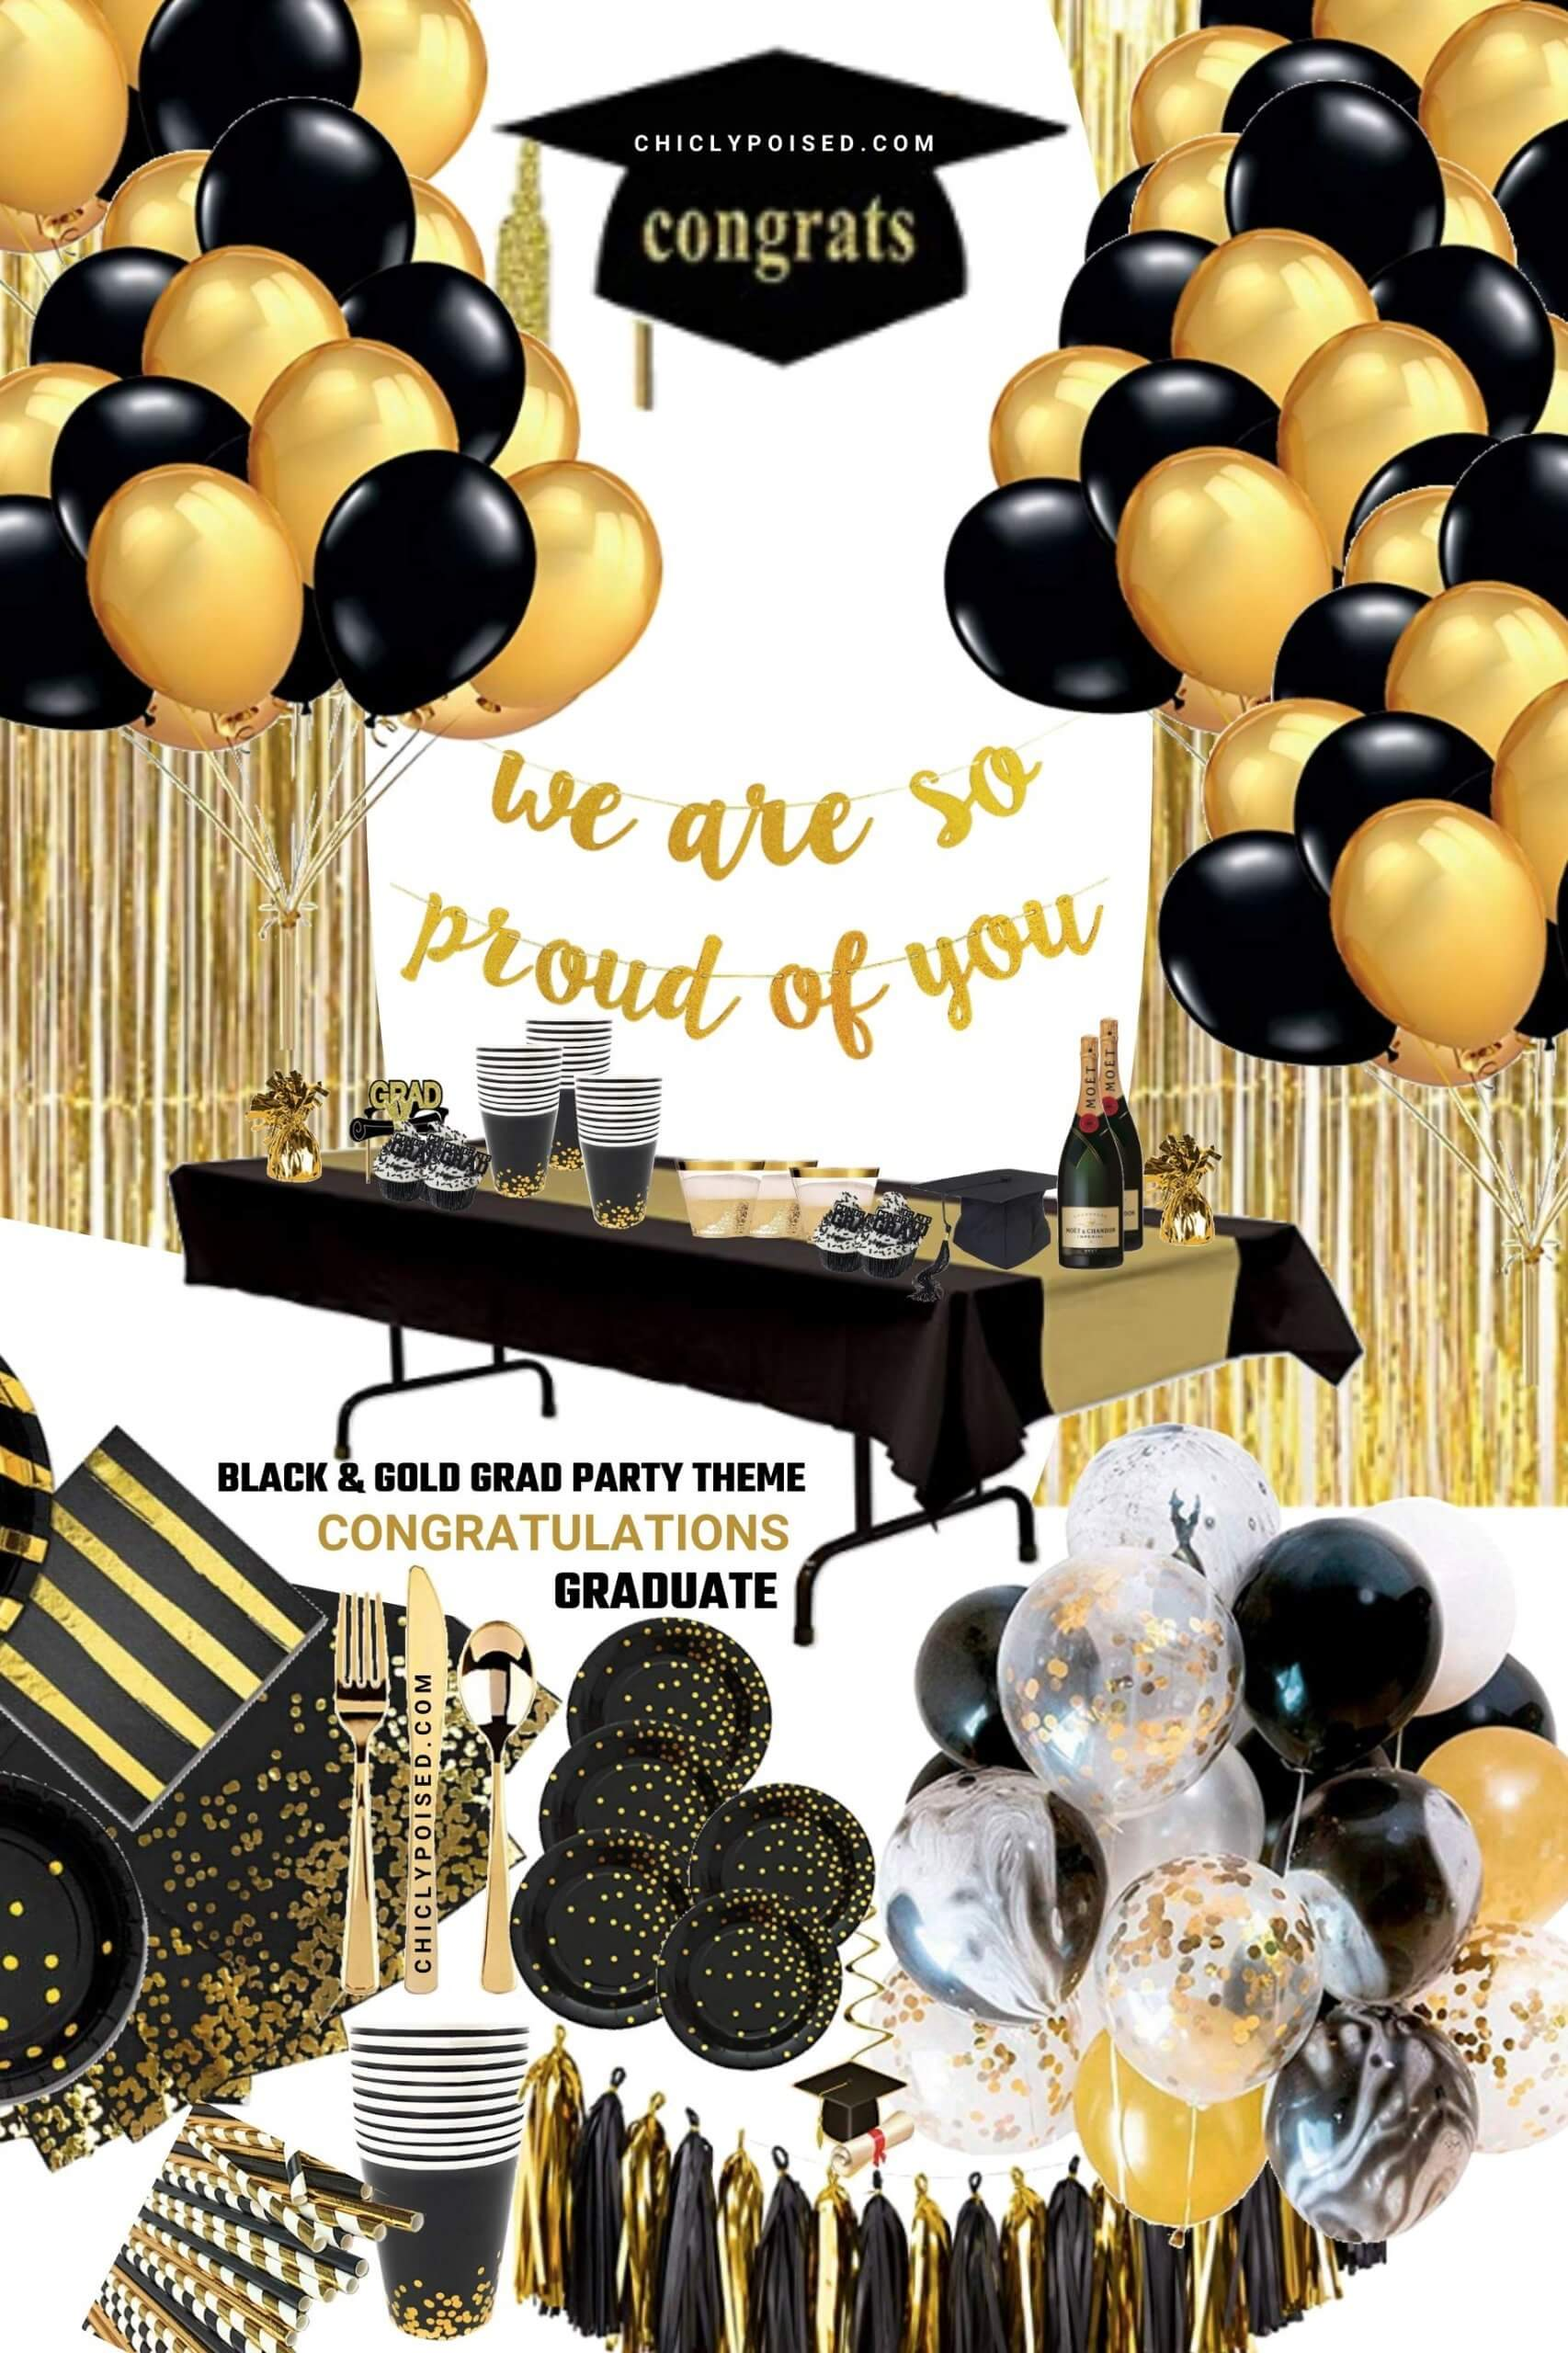 Graduation Party Ideas 2020 1 of 10